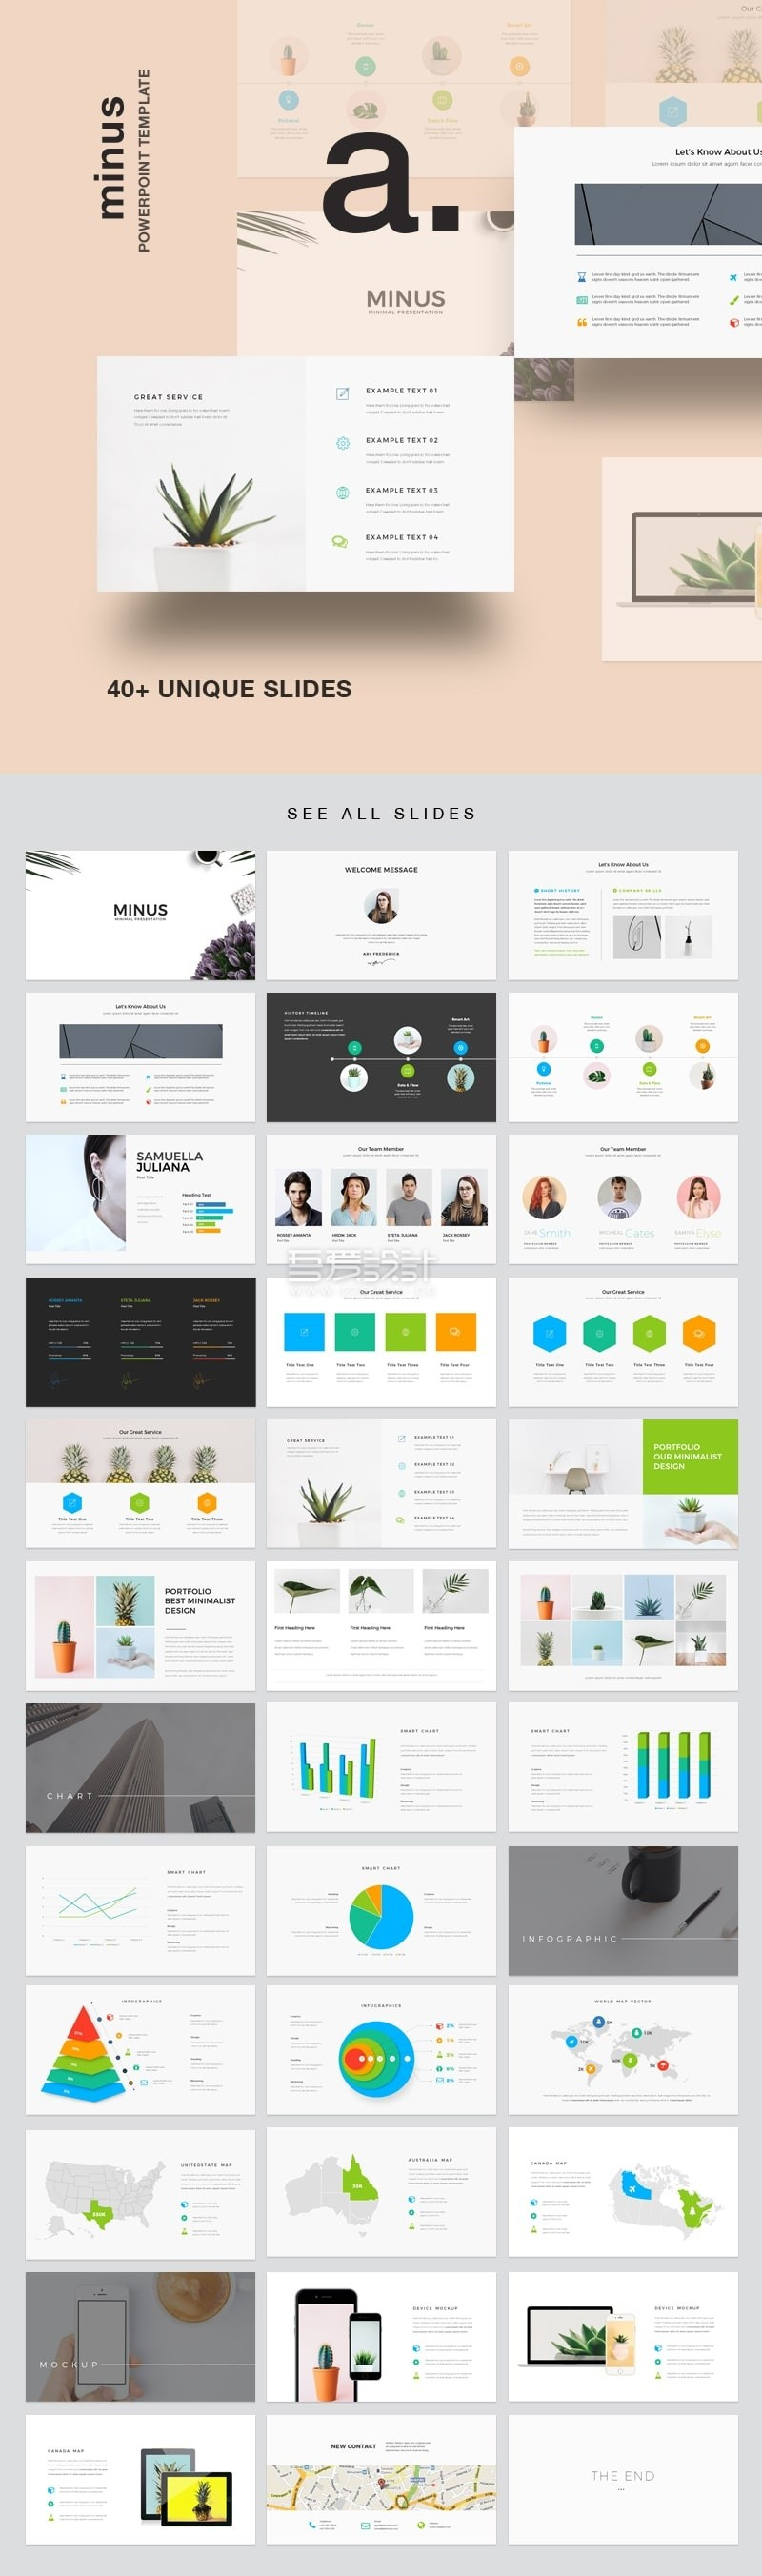 minus-minimal-powerpoint-presentation-template-1610-preview_01